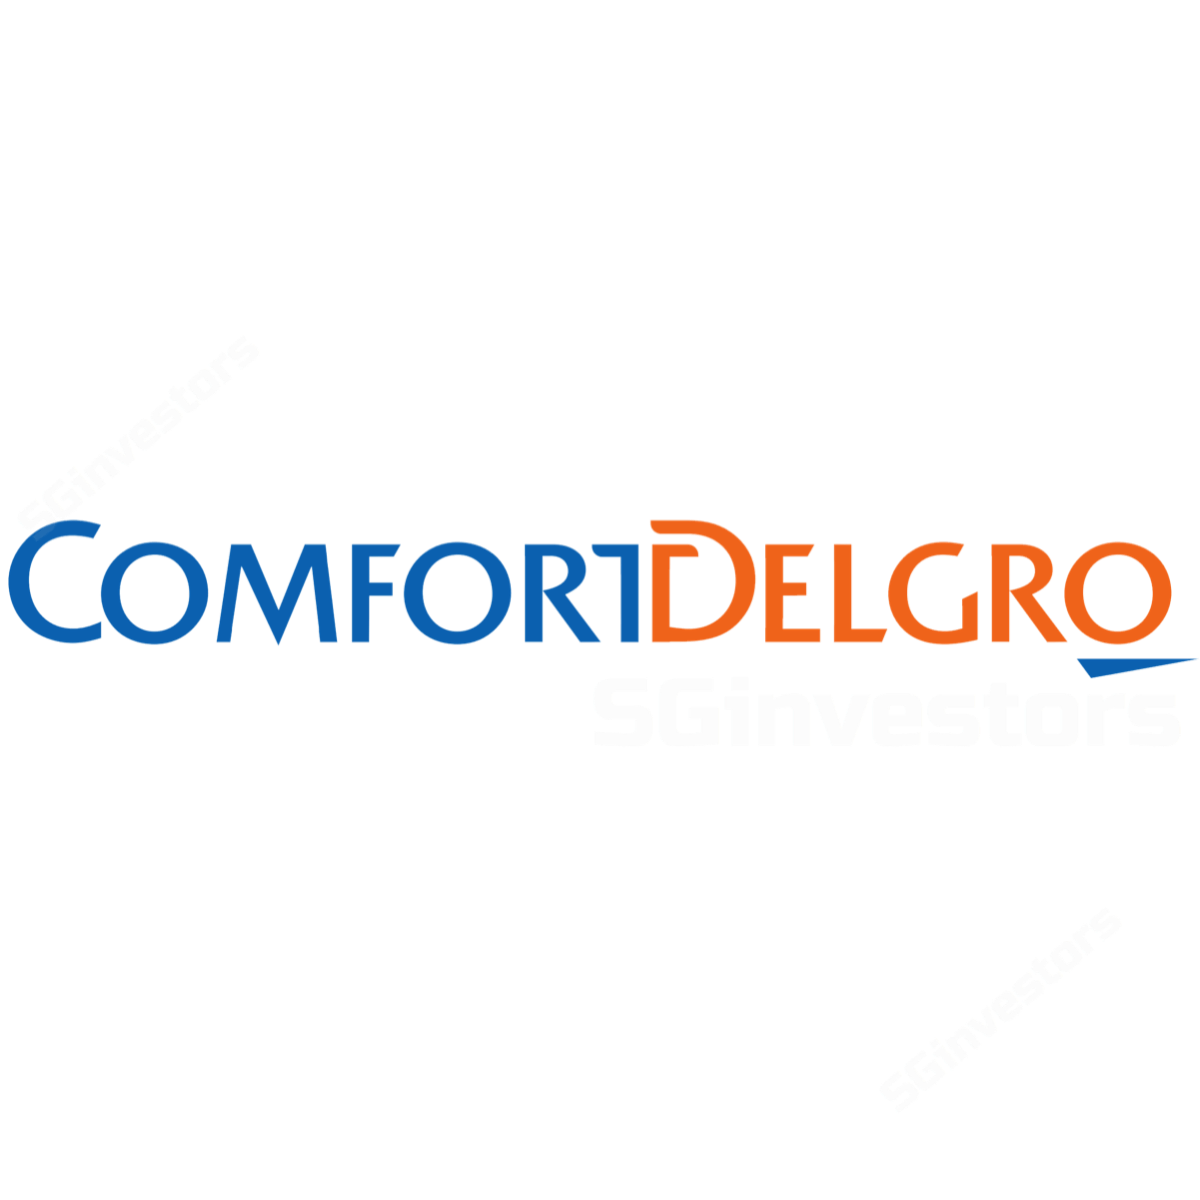 ComfortDelGro Corporation - RHB Invest 2017-08-14: Moderating Organic Growth Expectation